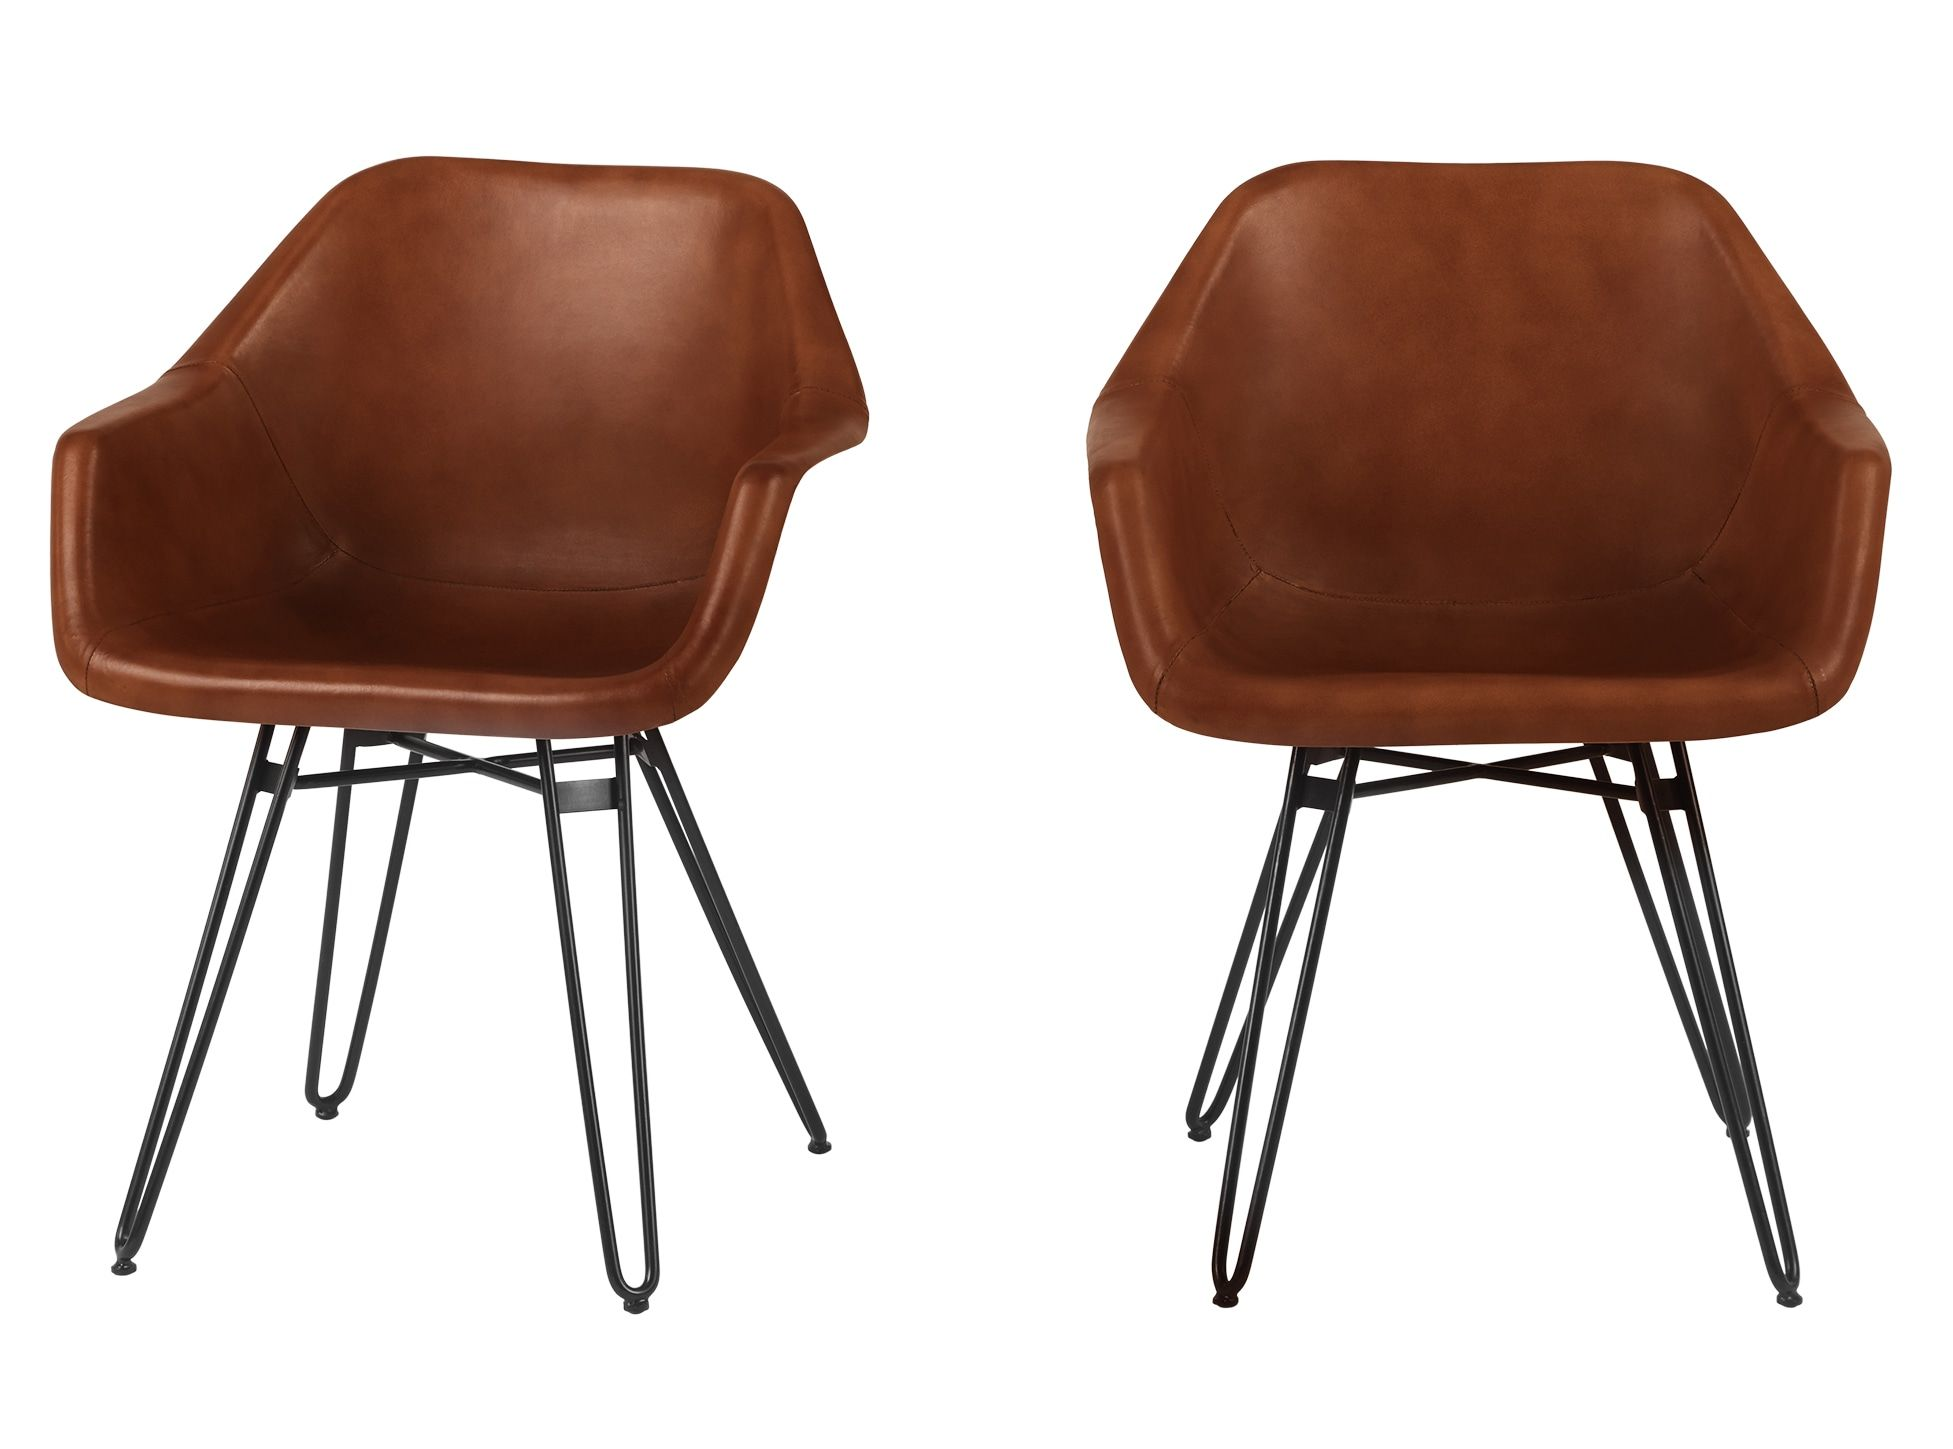 Set of 2 Hektor Tub Dining Chair, Tan and Black | Dining ...